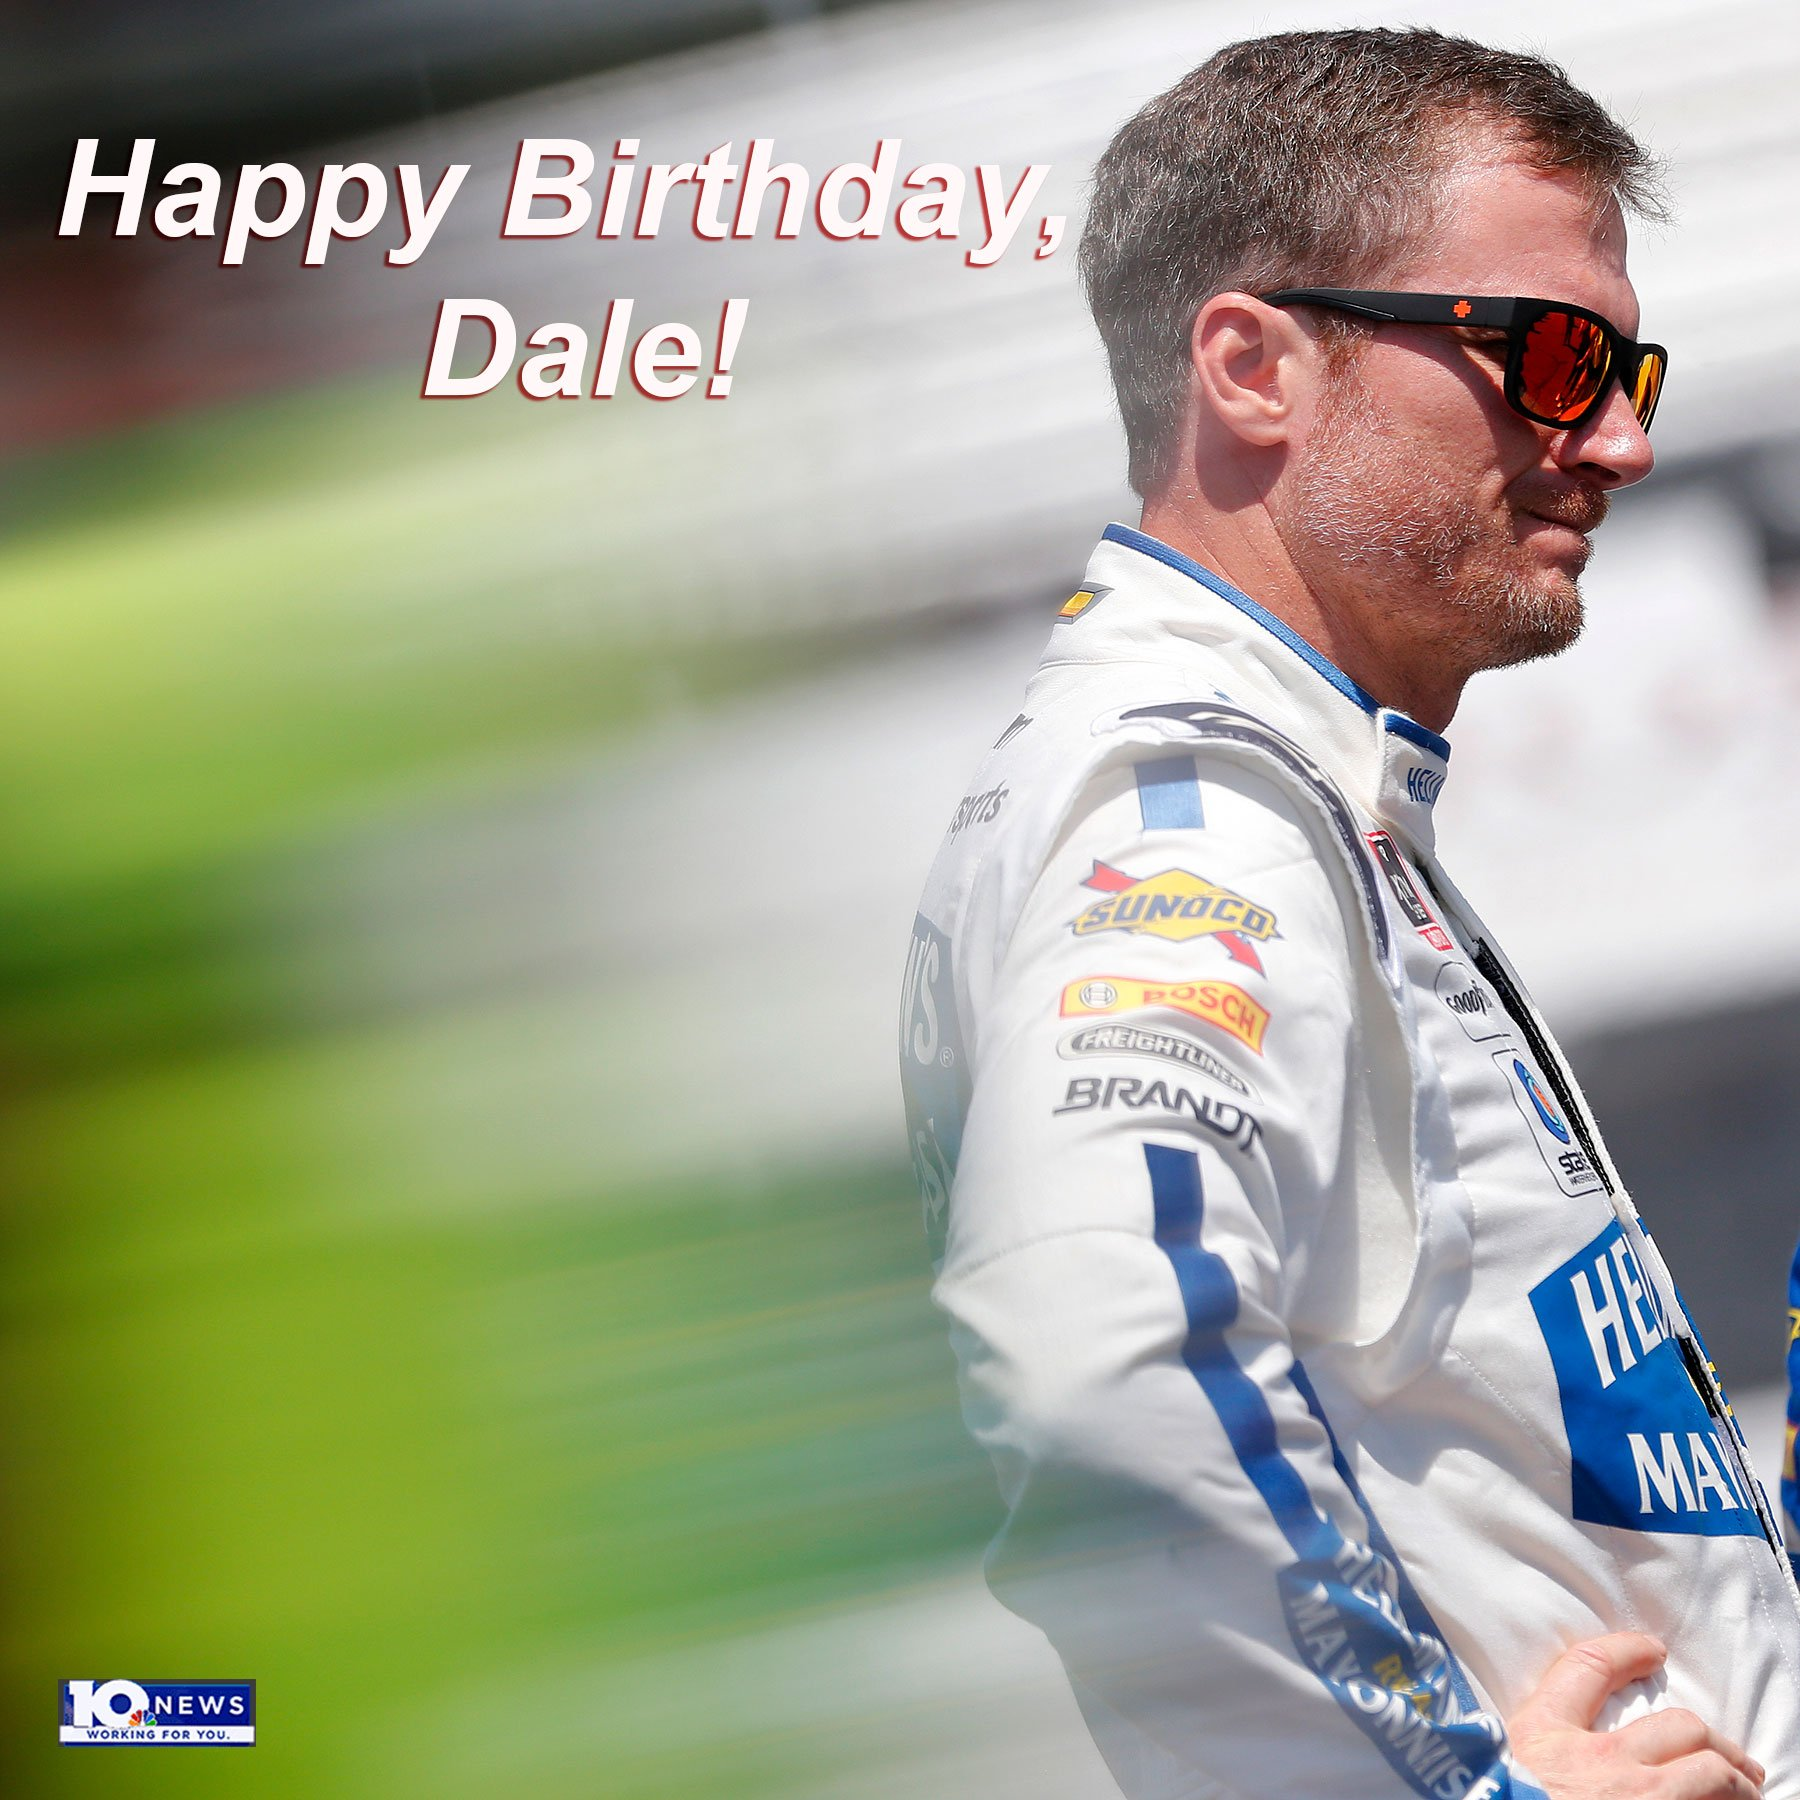 A happy 45th birthday to semi-retired NASCAR driver Dale Earnhardt Jr.!